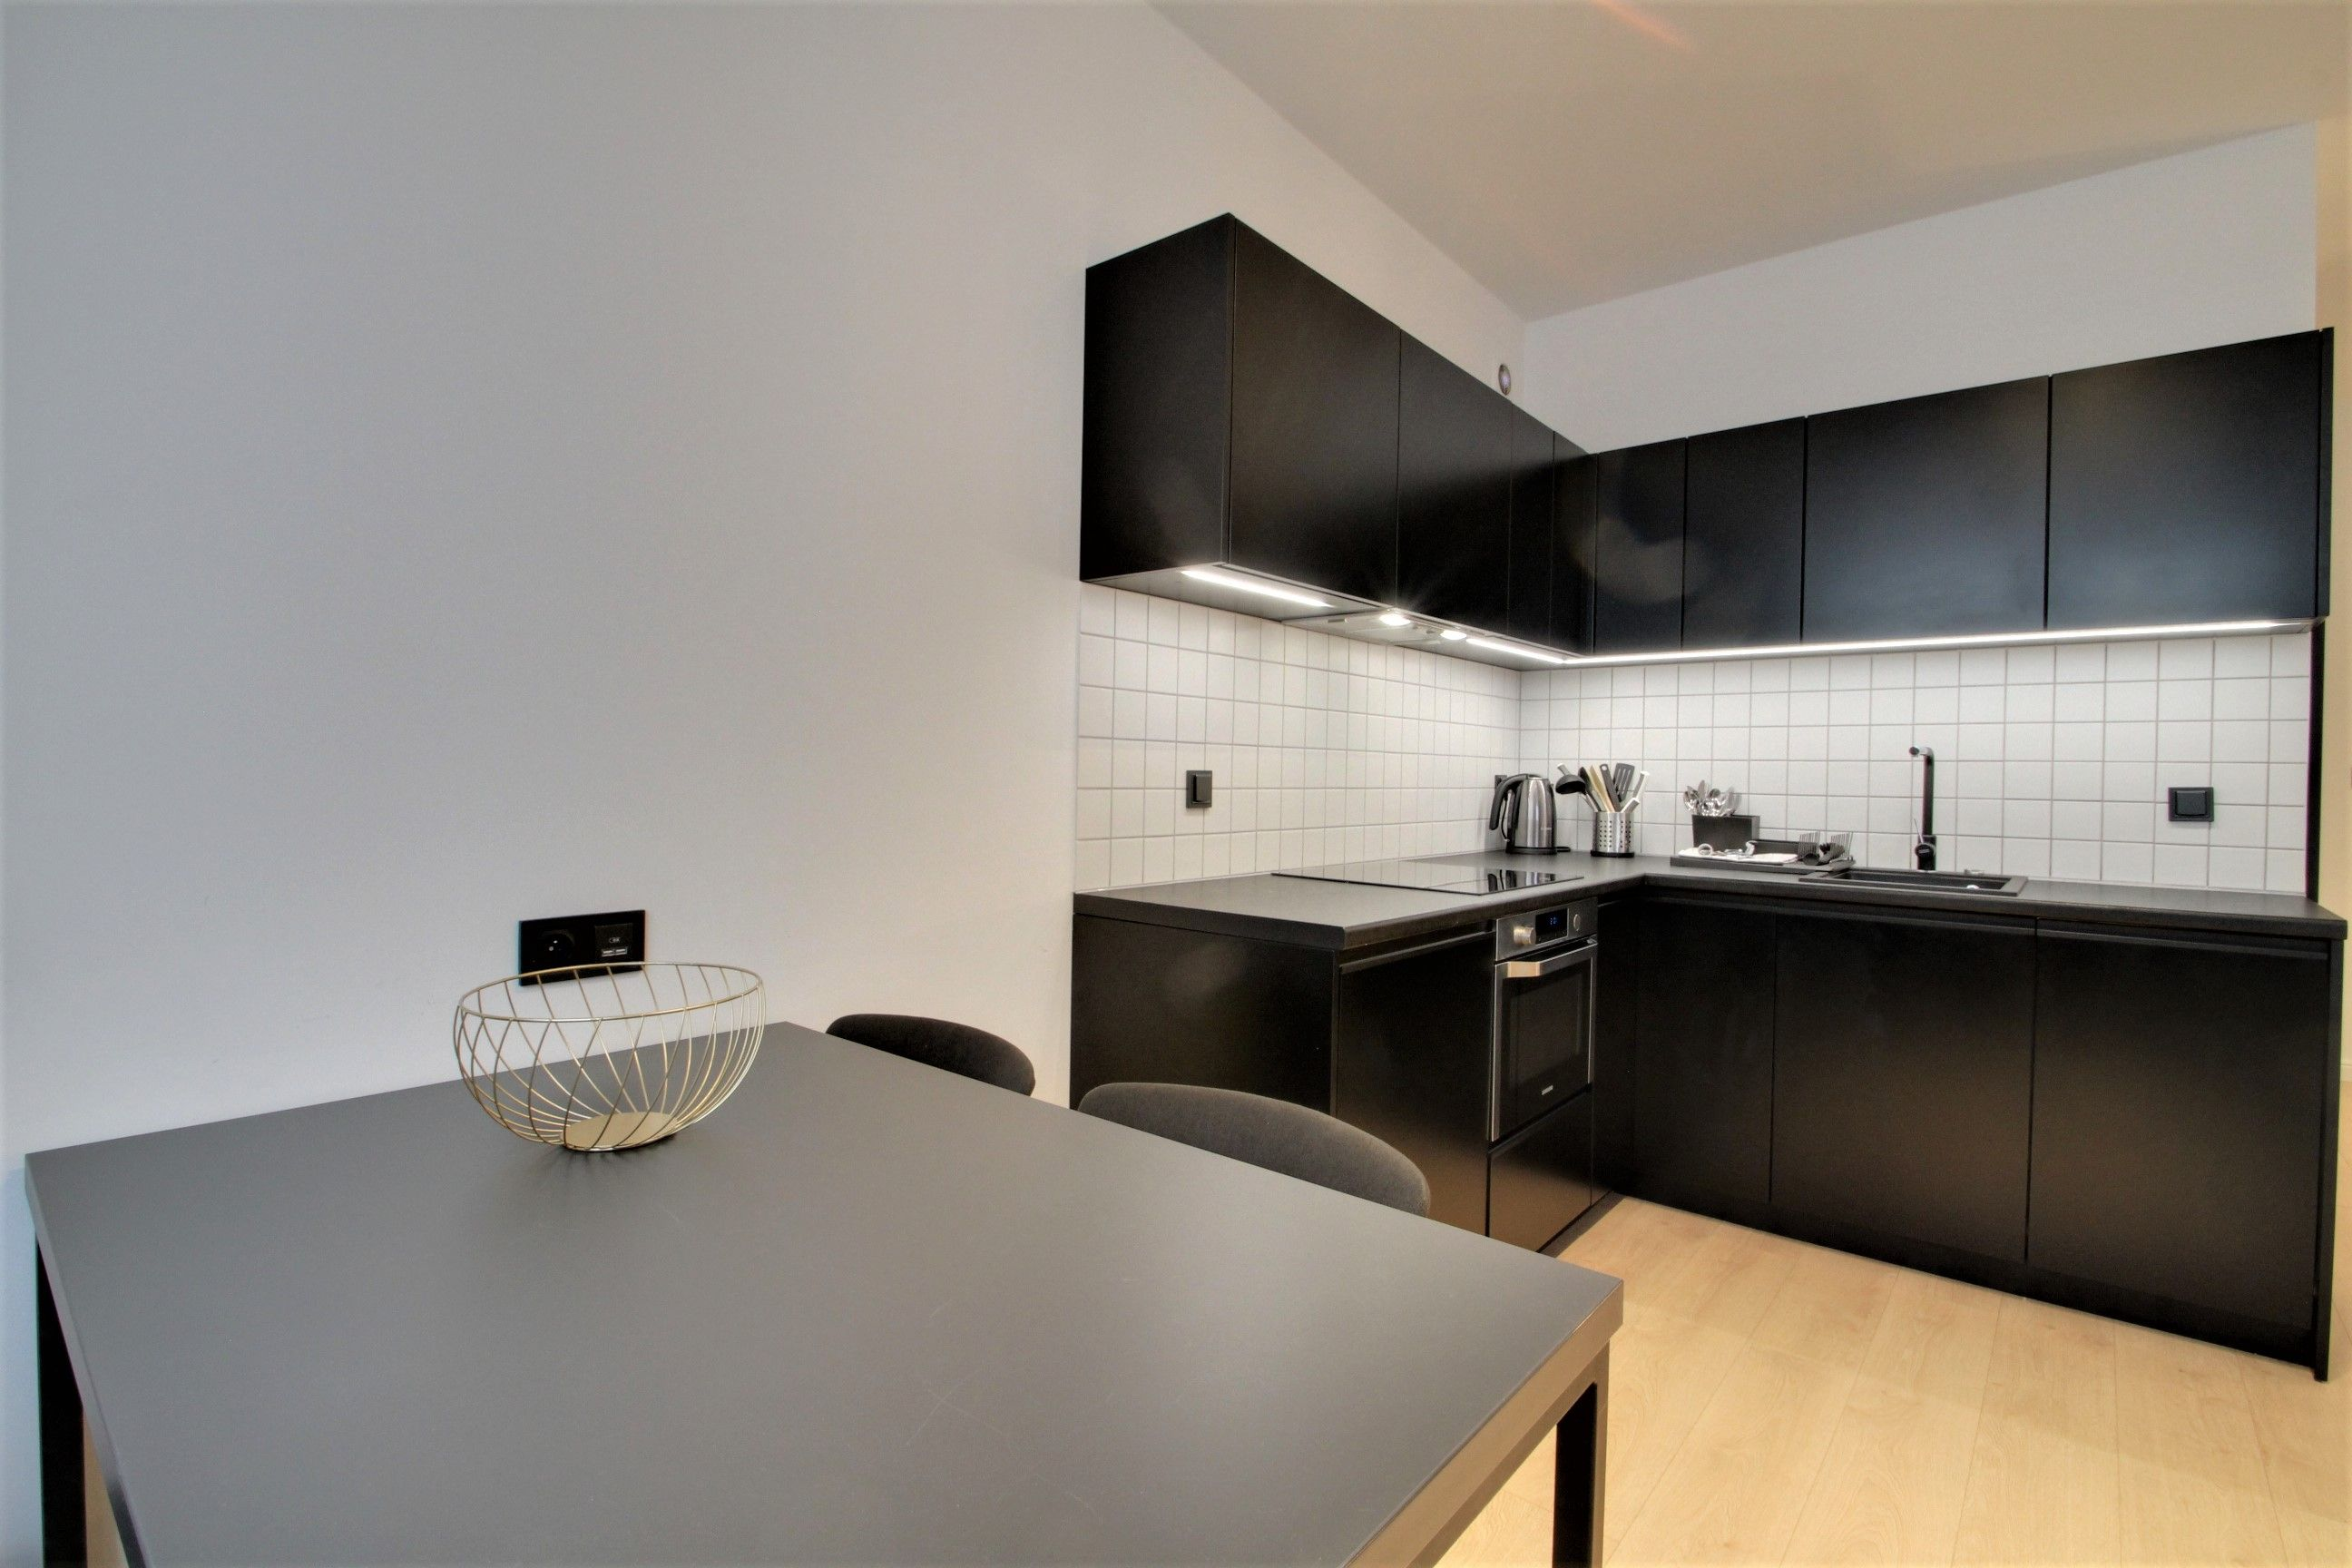 Studio - Large apartment to rent in Warsaw UPR-A-054-2